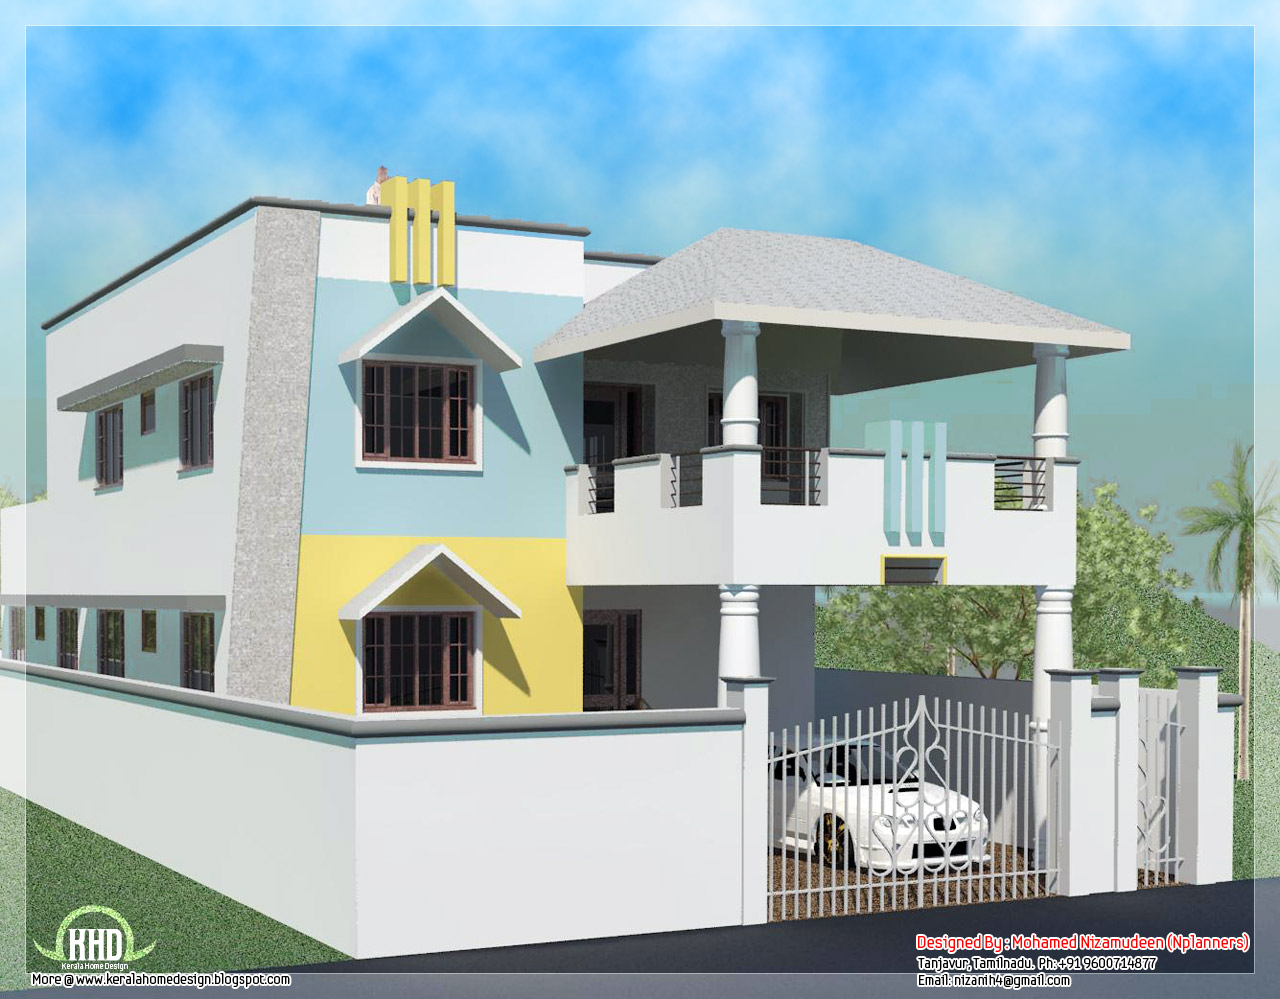 House plans and design modern house plans in tamilnadu for Home designs in tamilnadu